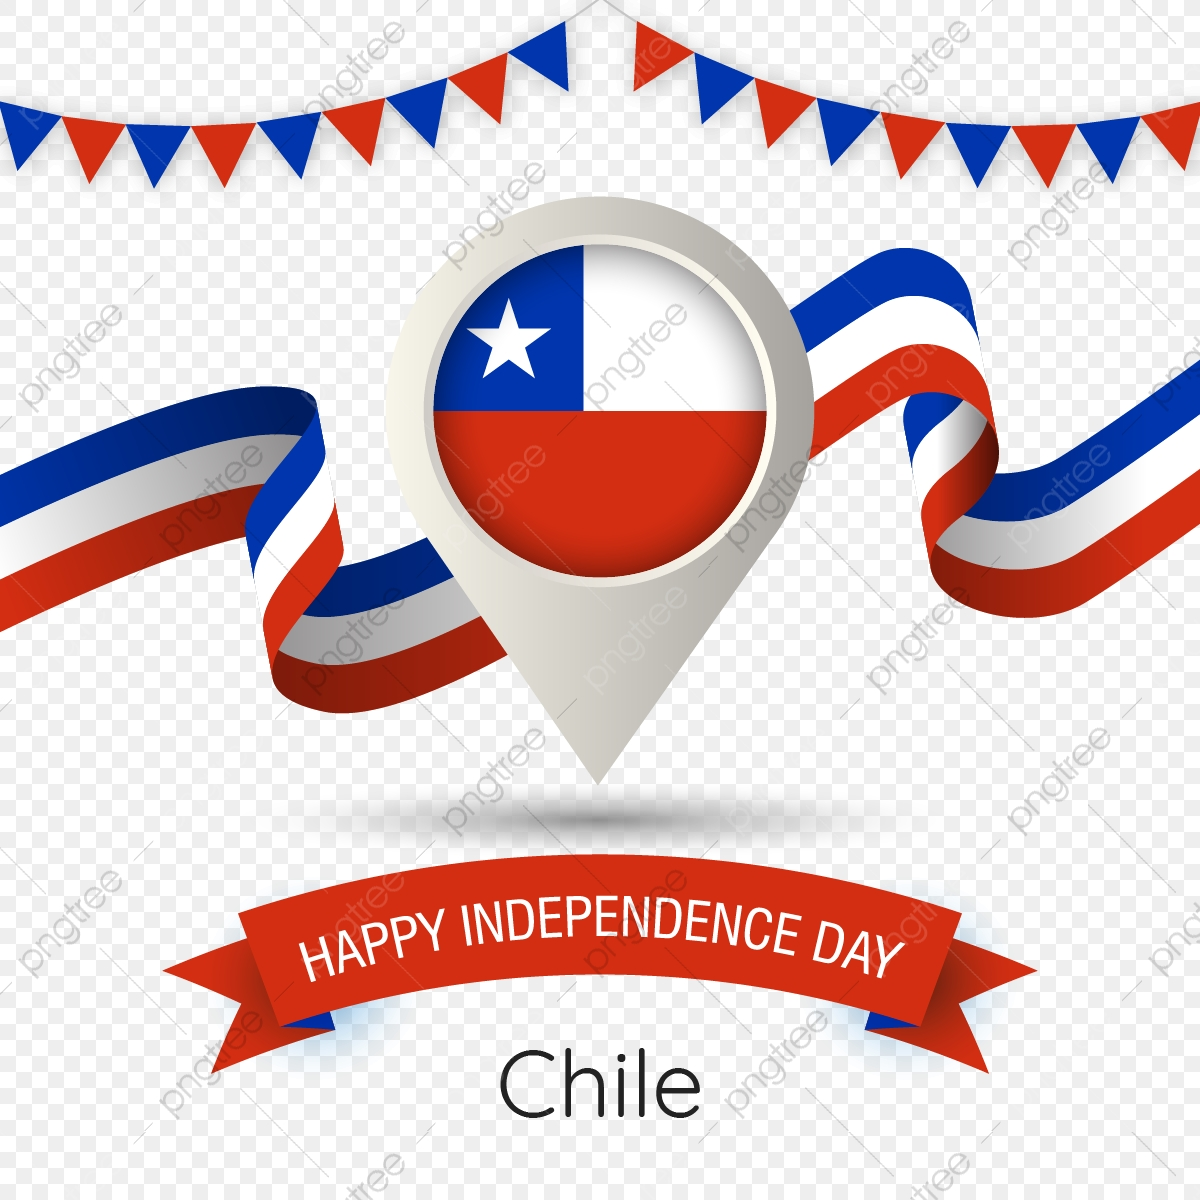 Chile Independence Day With Stylized Country Flag Pin Illustration.